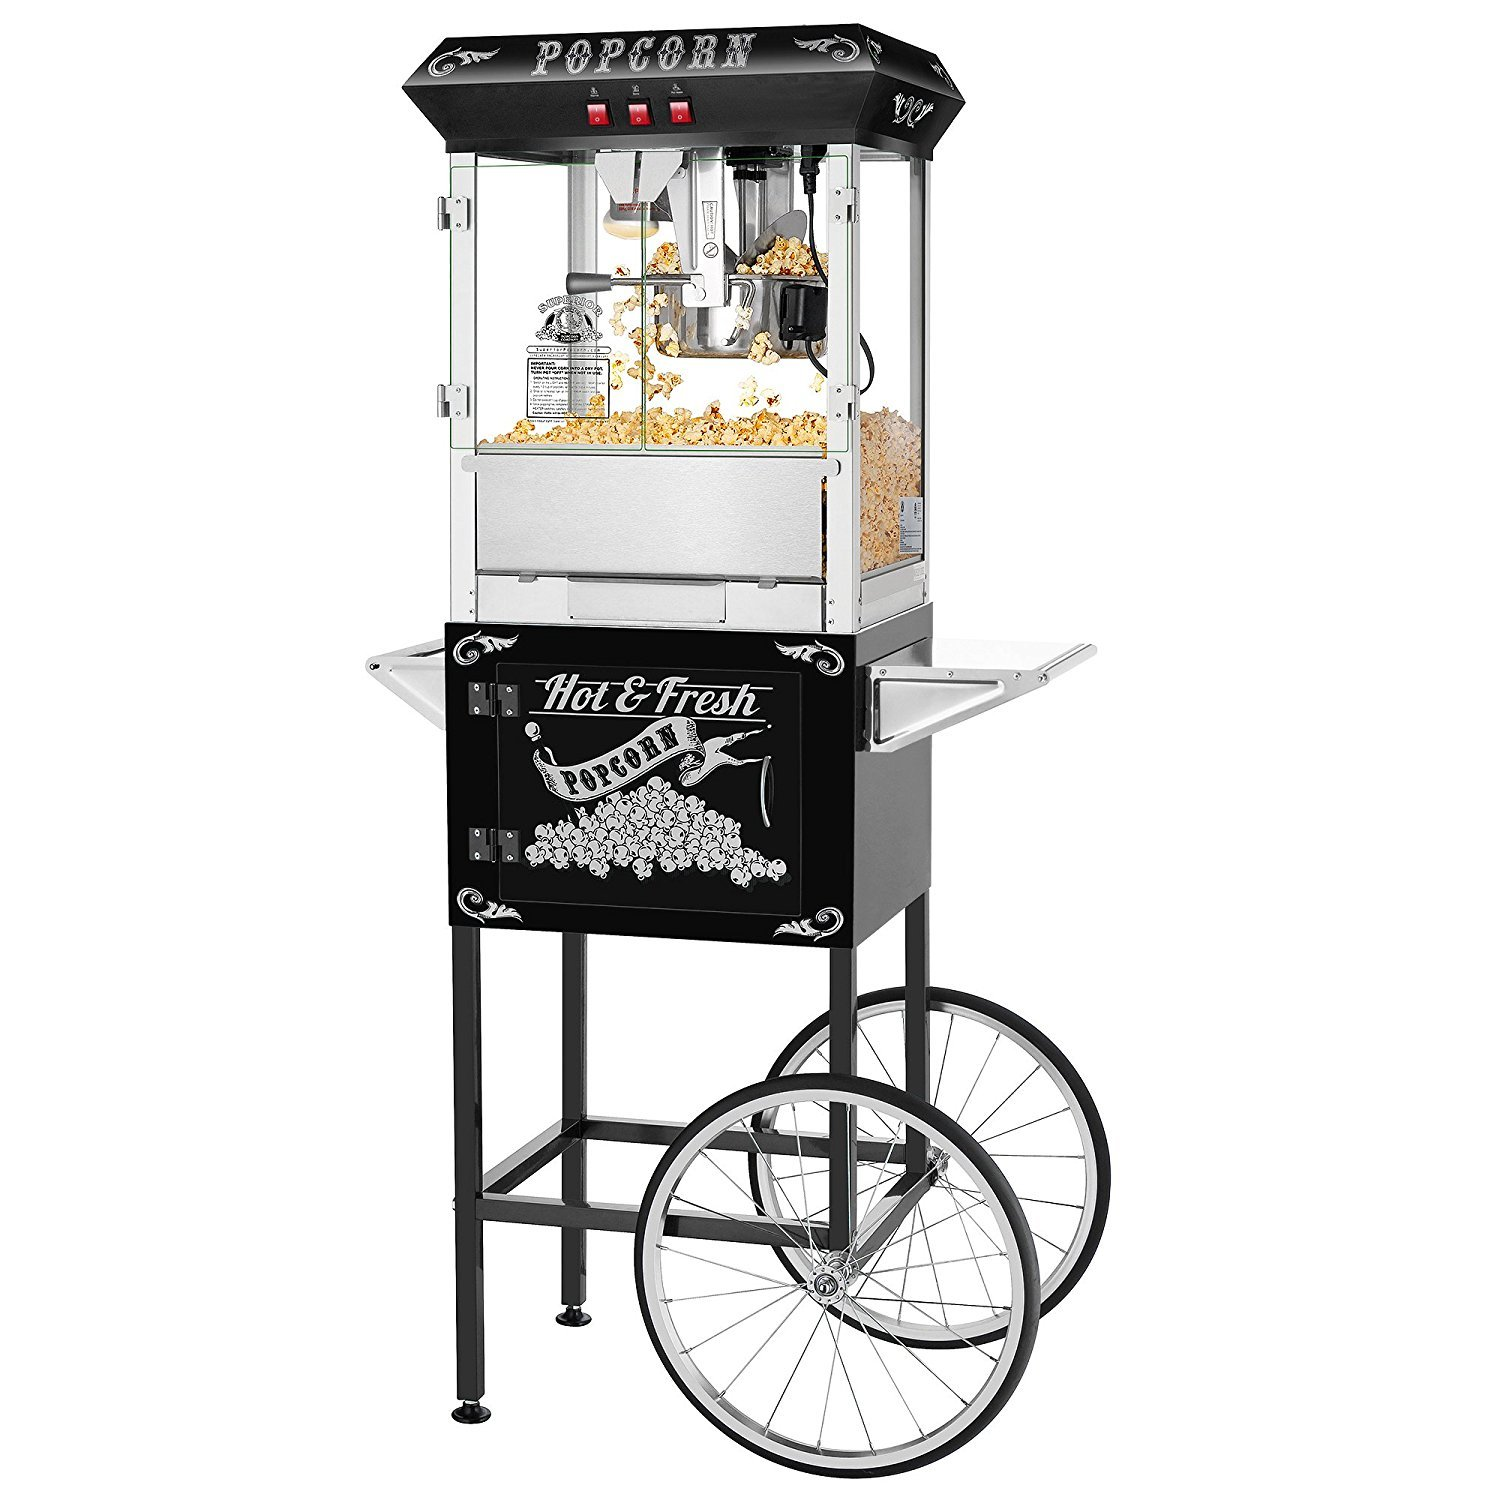 Hot and Fresh Popcorn Popper Machine With Cart-Makes Approx. 3 Gallons Per Batch- by Superior Popcorn Company- 8 oz., Black